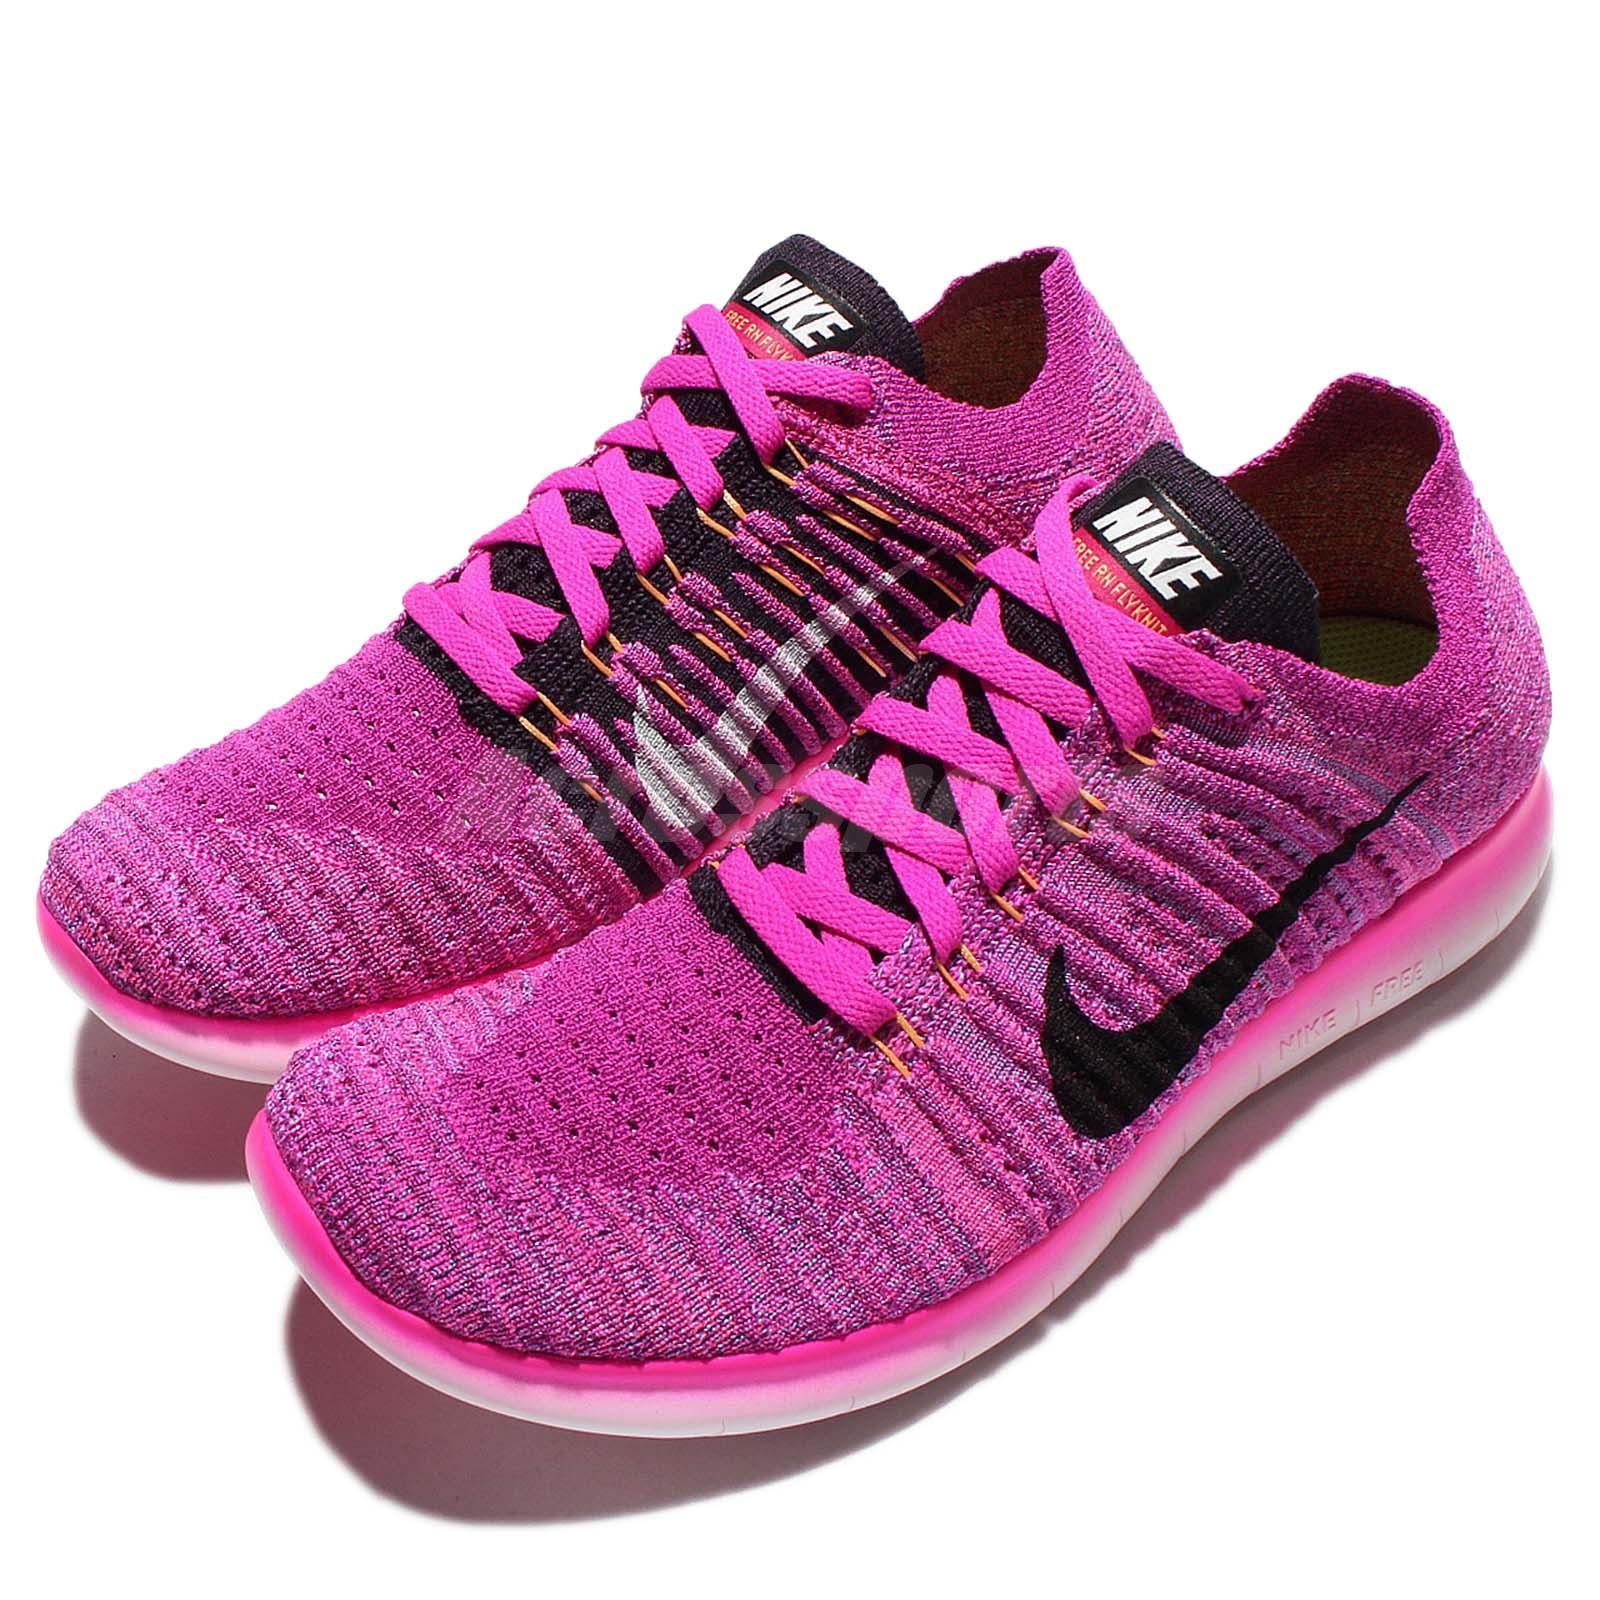 wmns nike free rn flyknit run purple black womens running. Black Bedroom Furniture Sets. Home Design Ideas